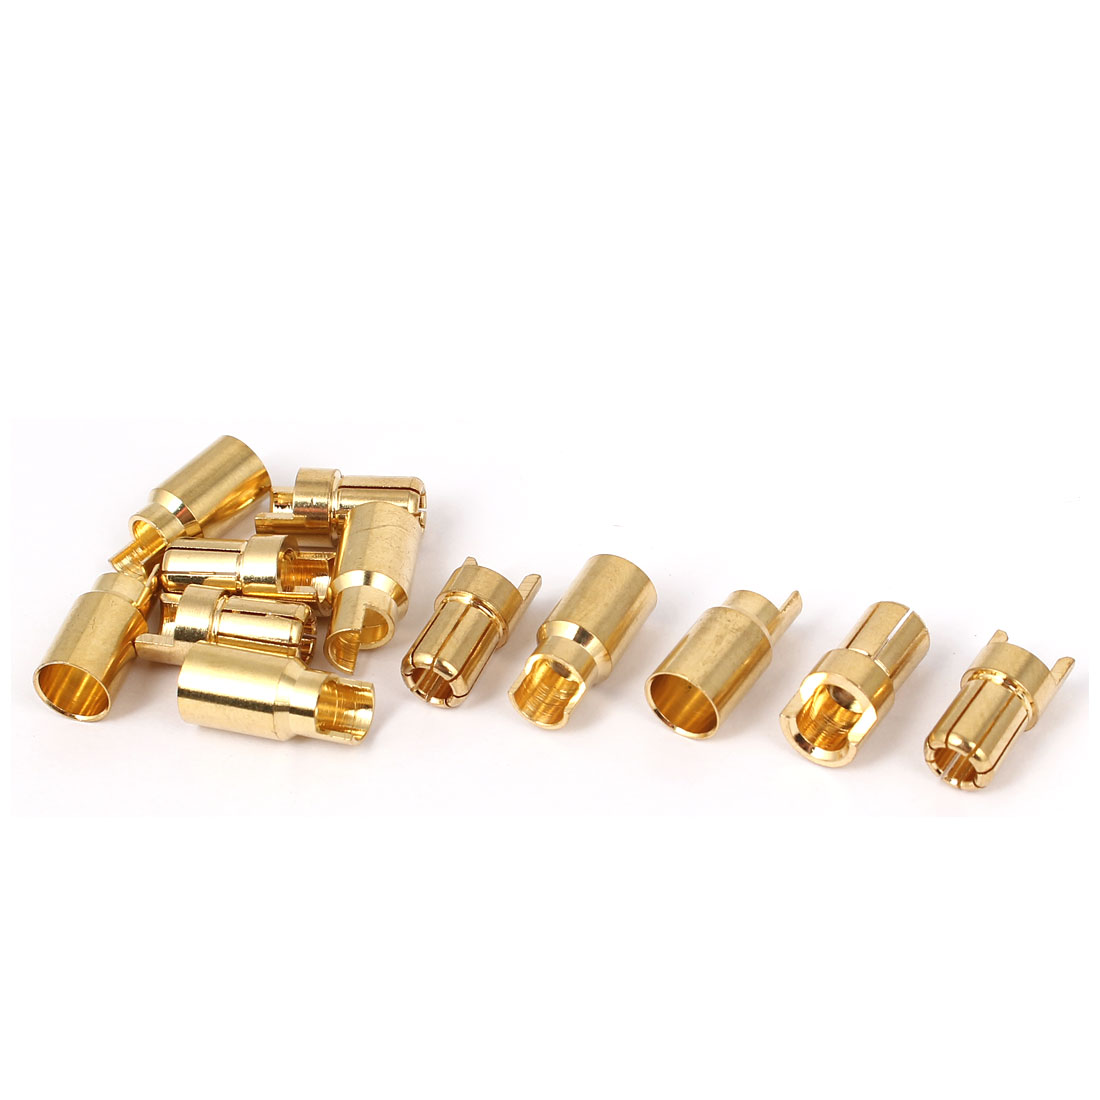 6 Pairs 6mm Gold Tone Metal Hemihedral Banana Female Male Connector for RC Helicopter